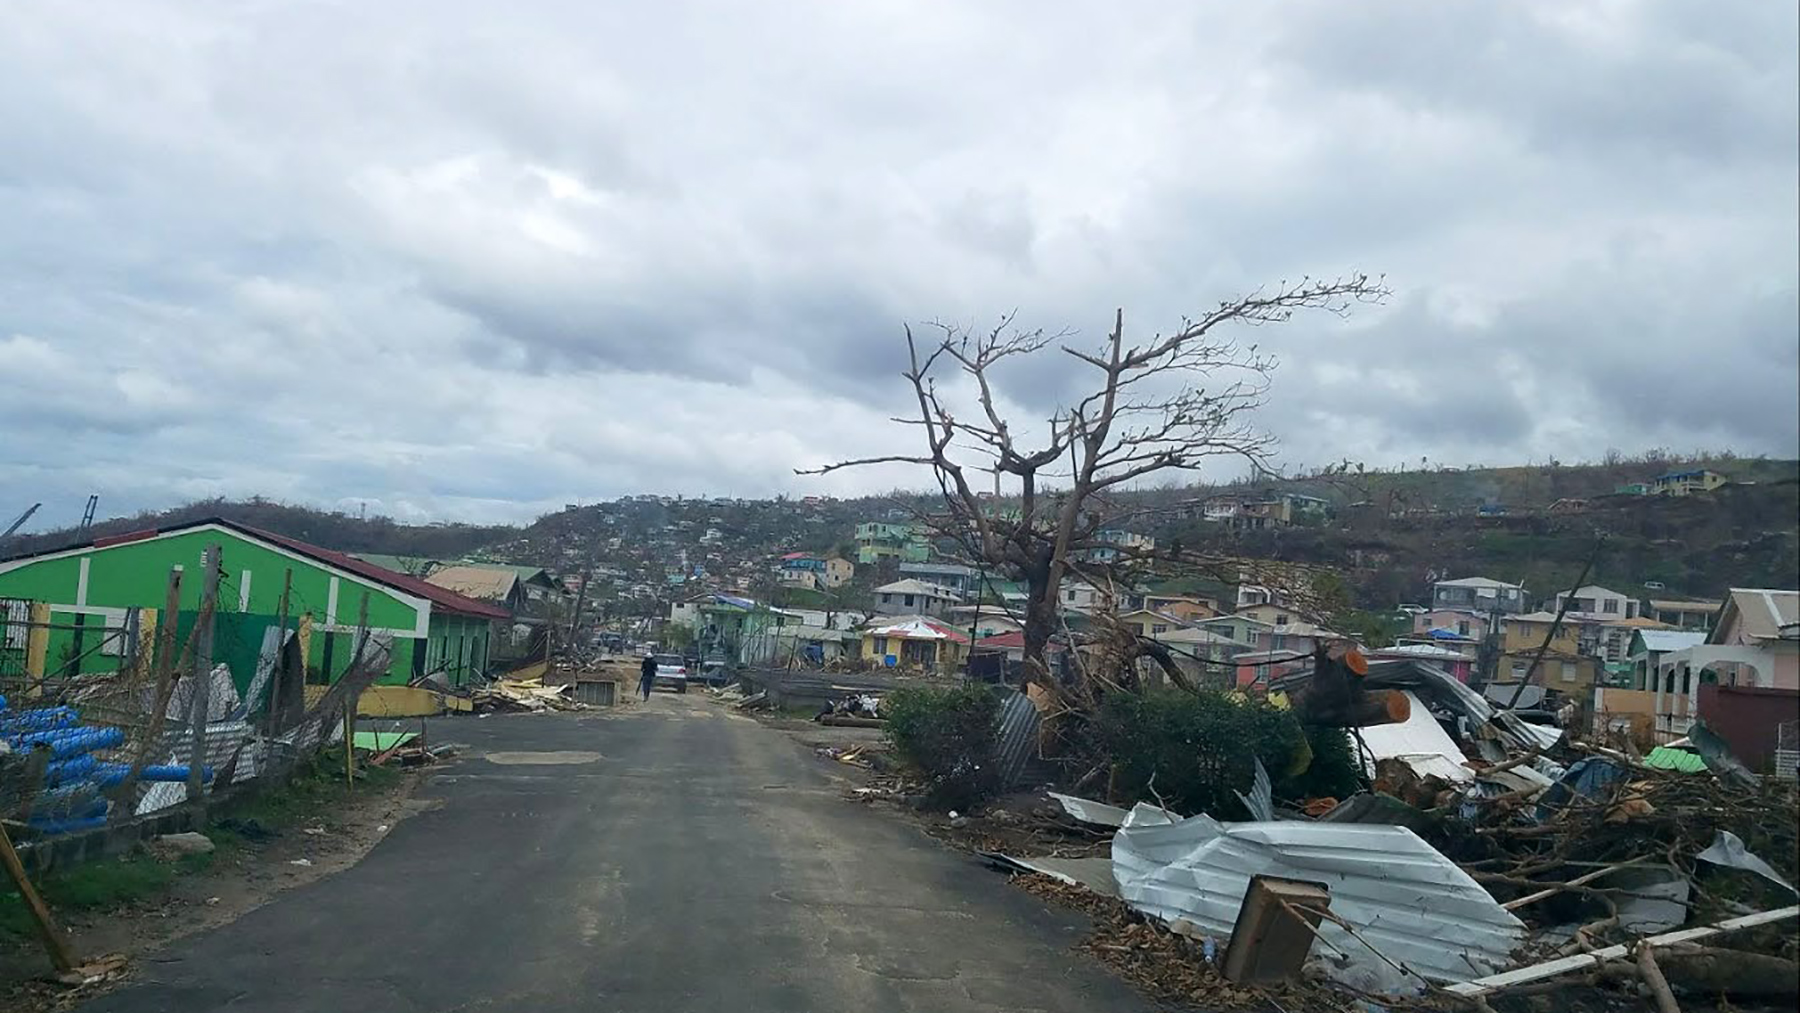 Over 95 percent of the buildings and infrastructure on the island of Dominica were destroyed or damaged by Hurricane Maria. (Andrew MacCalla/Direct Relief)